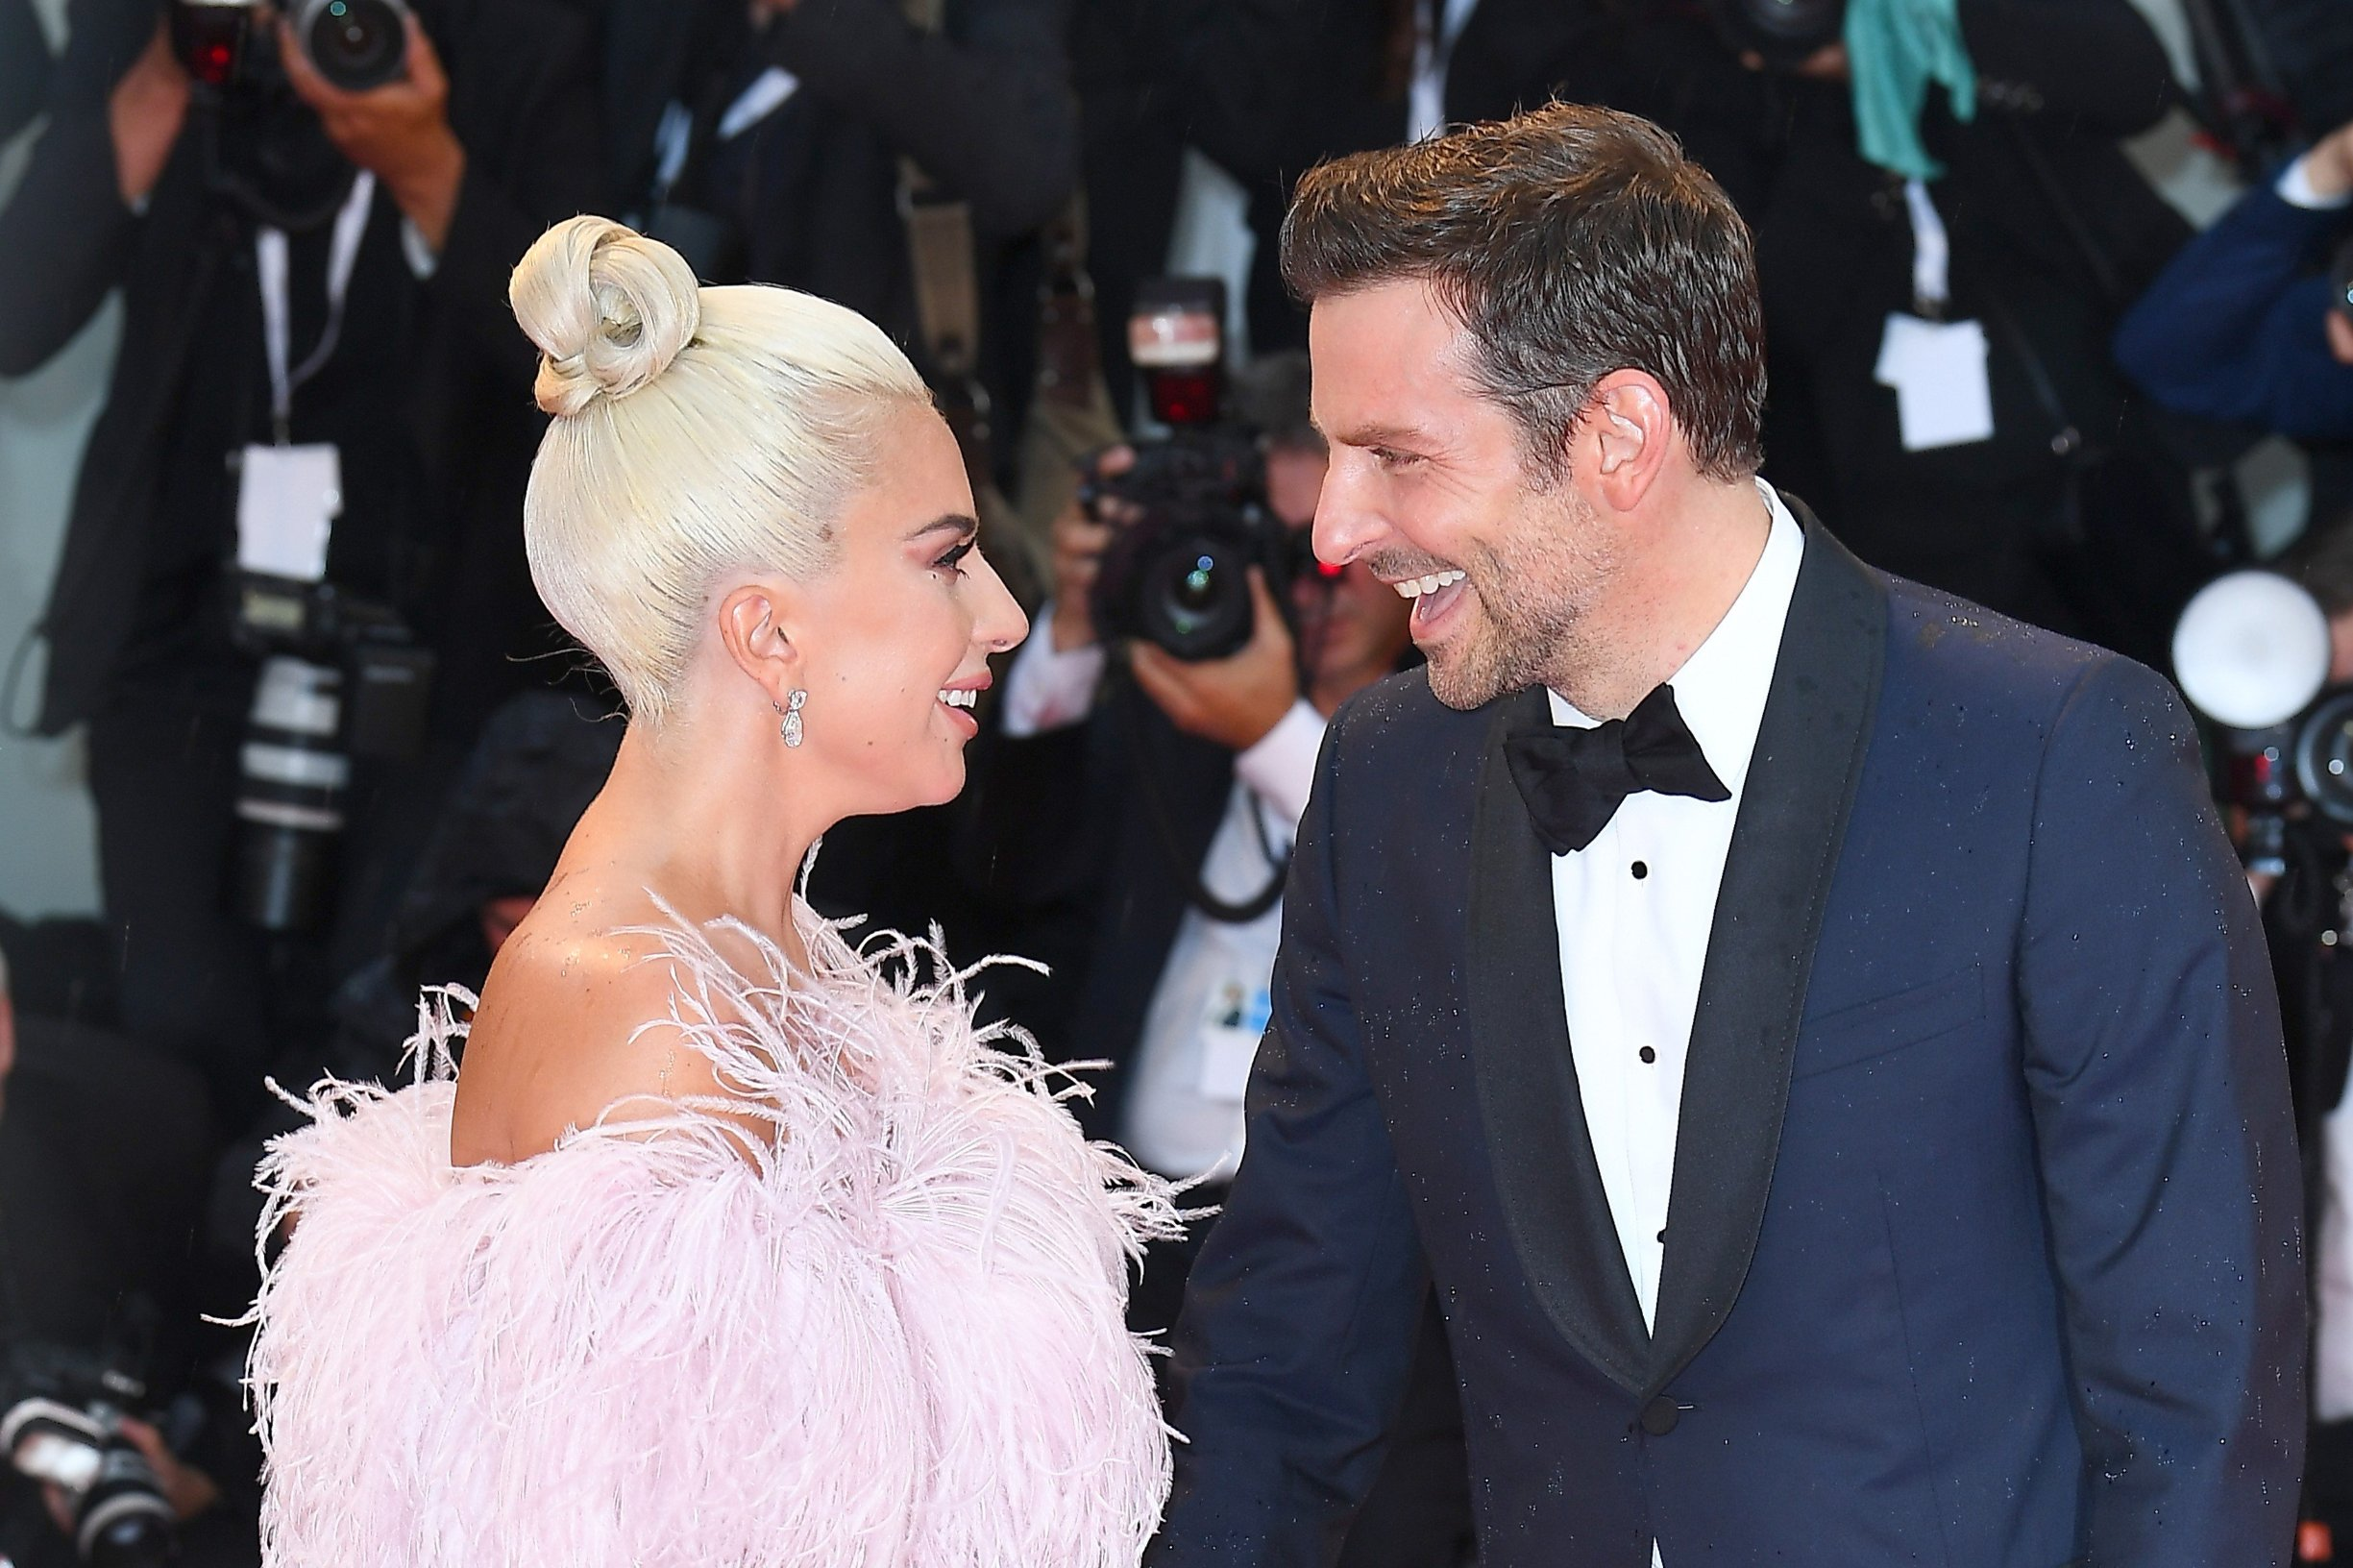 NON EXCLUSIVE PICTURE: MATRIXPICTURES.CO.UK PLEASE CREDIT ALL USES  WORLD RIGHTS  Lady Gaga and Bradley Cooper attend the 75th Venice Film Festival screening of A Star Is Born at Palazzo del Casino in Venice.  AUGUST 31st 2018  REF: PTY 183013, Image: 384873498, License: Rights-managed, Restrictions: , Model Release: no, Credit line: Profimedia, Matrixpictures UK